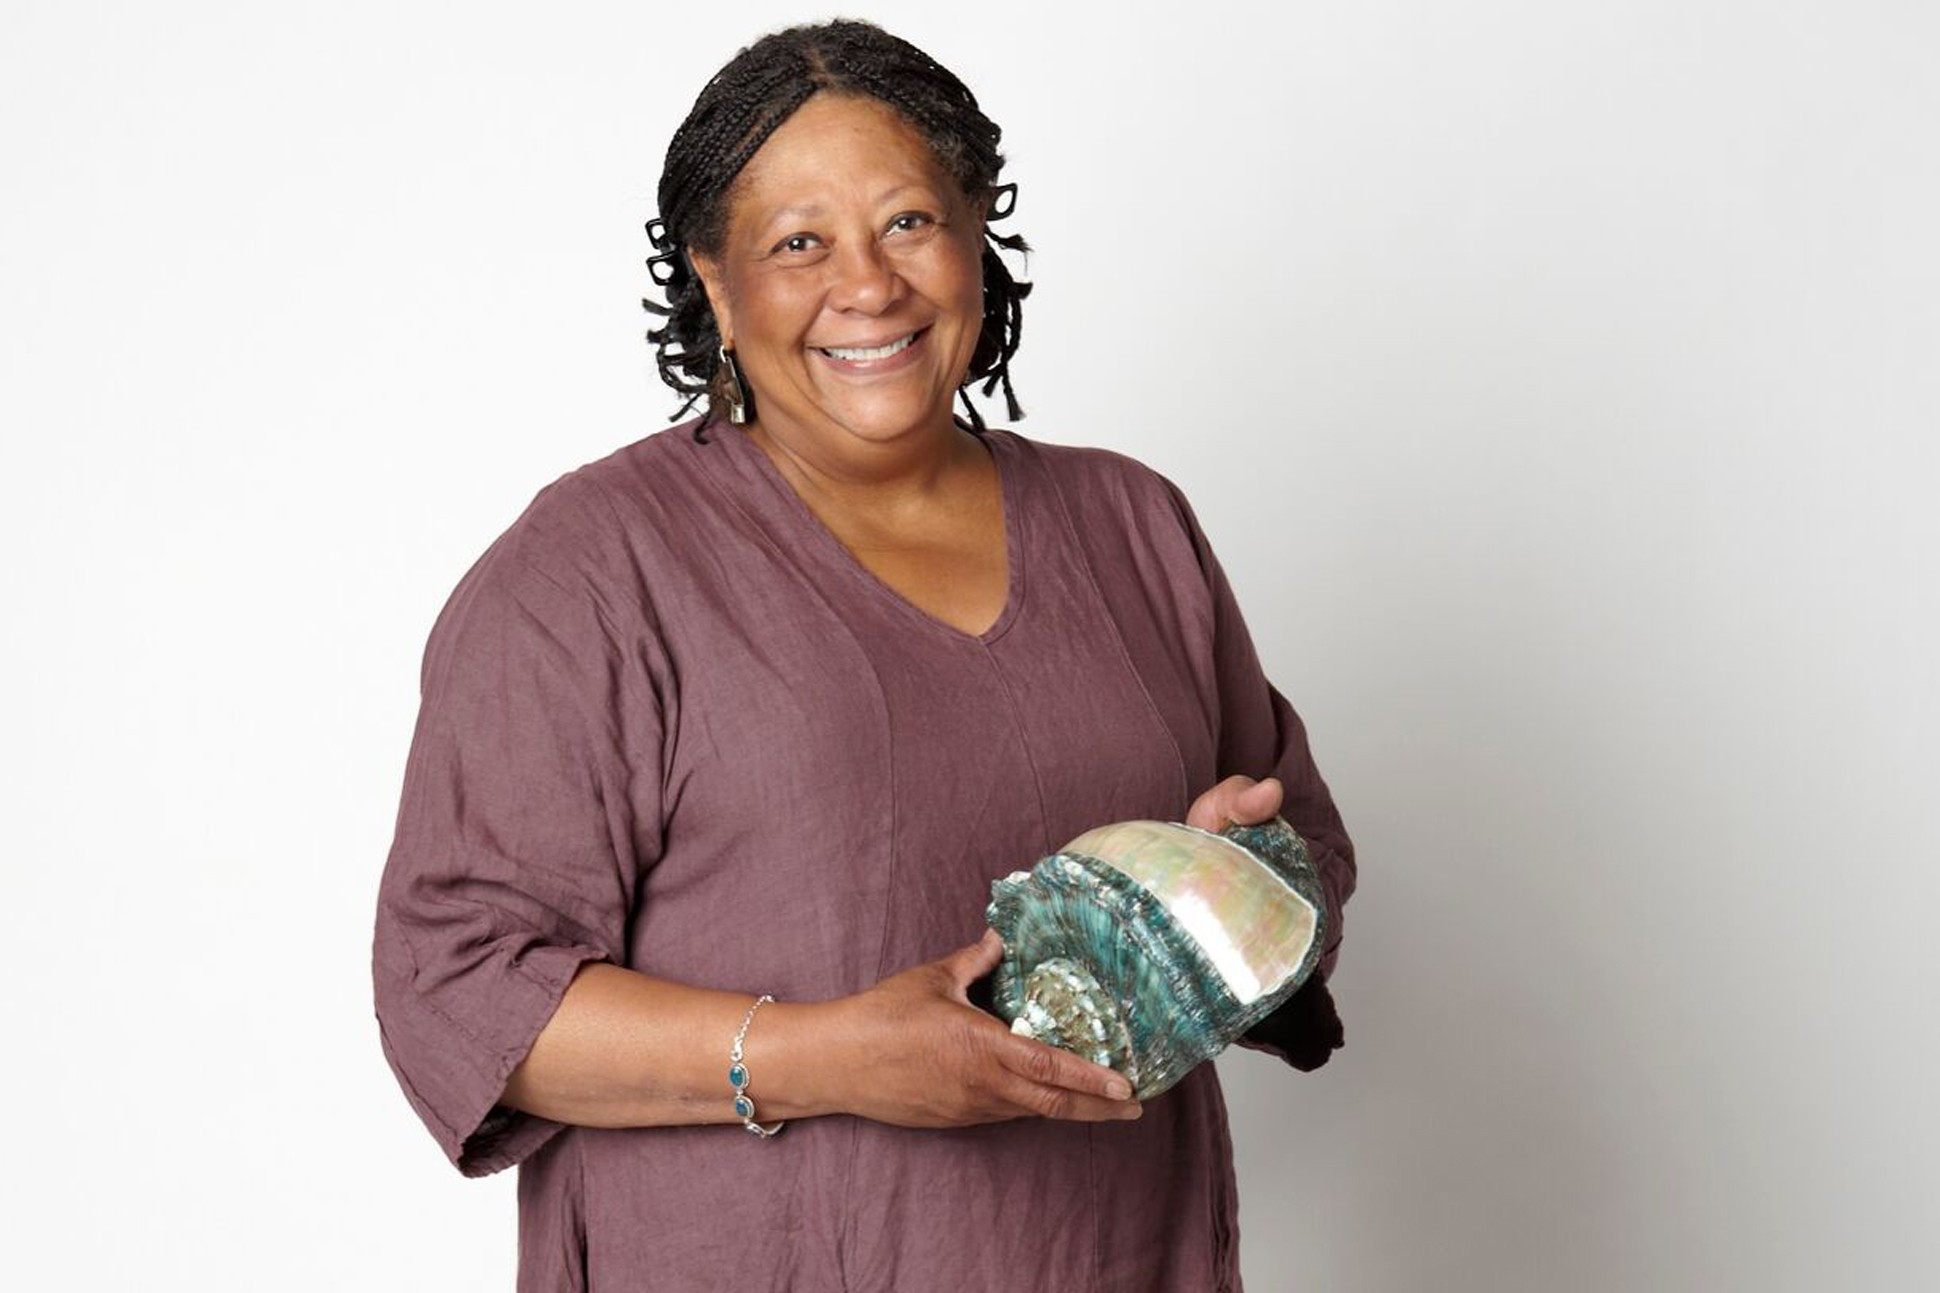 Image of Marilyn Nelson.